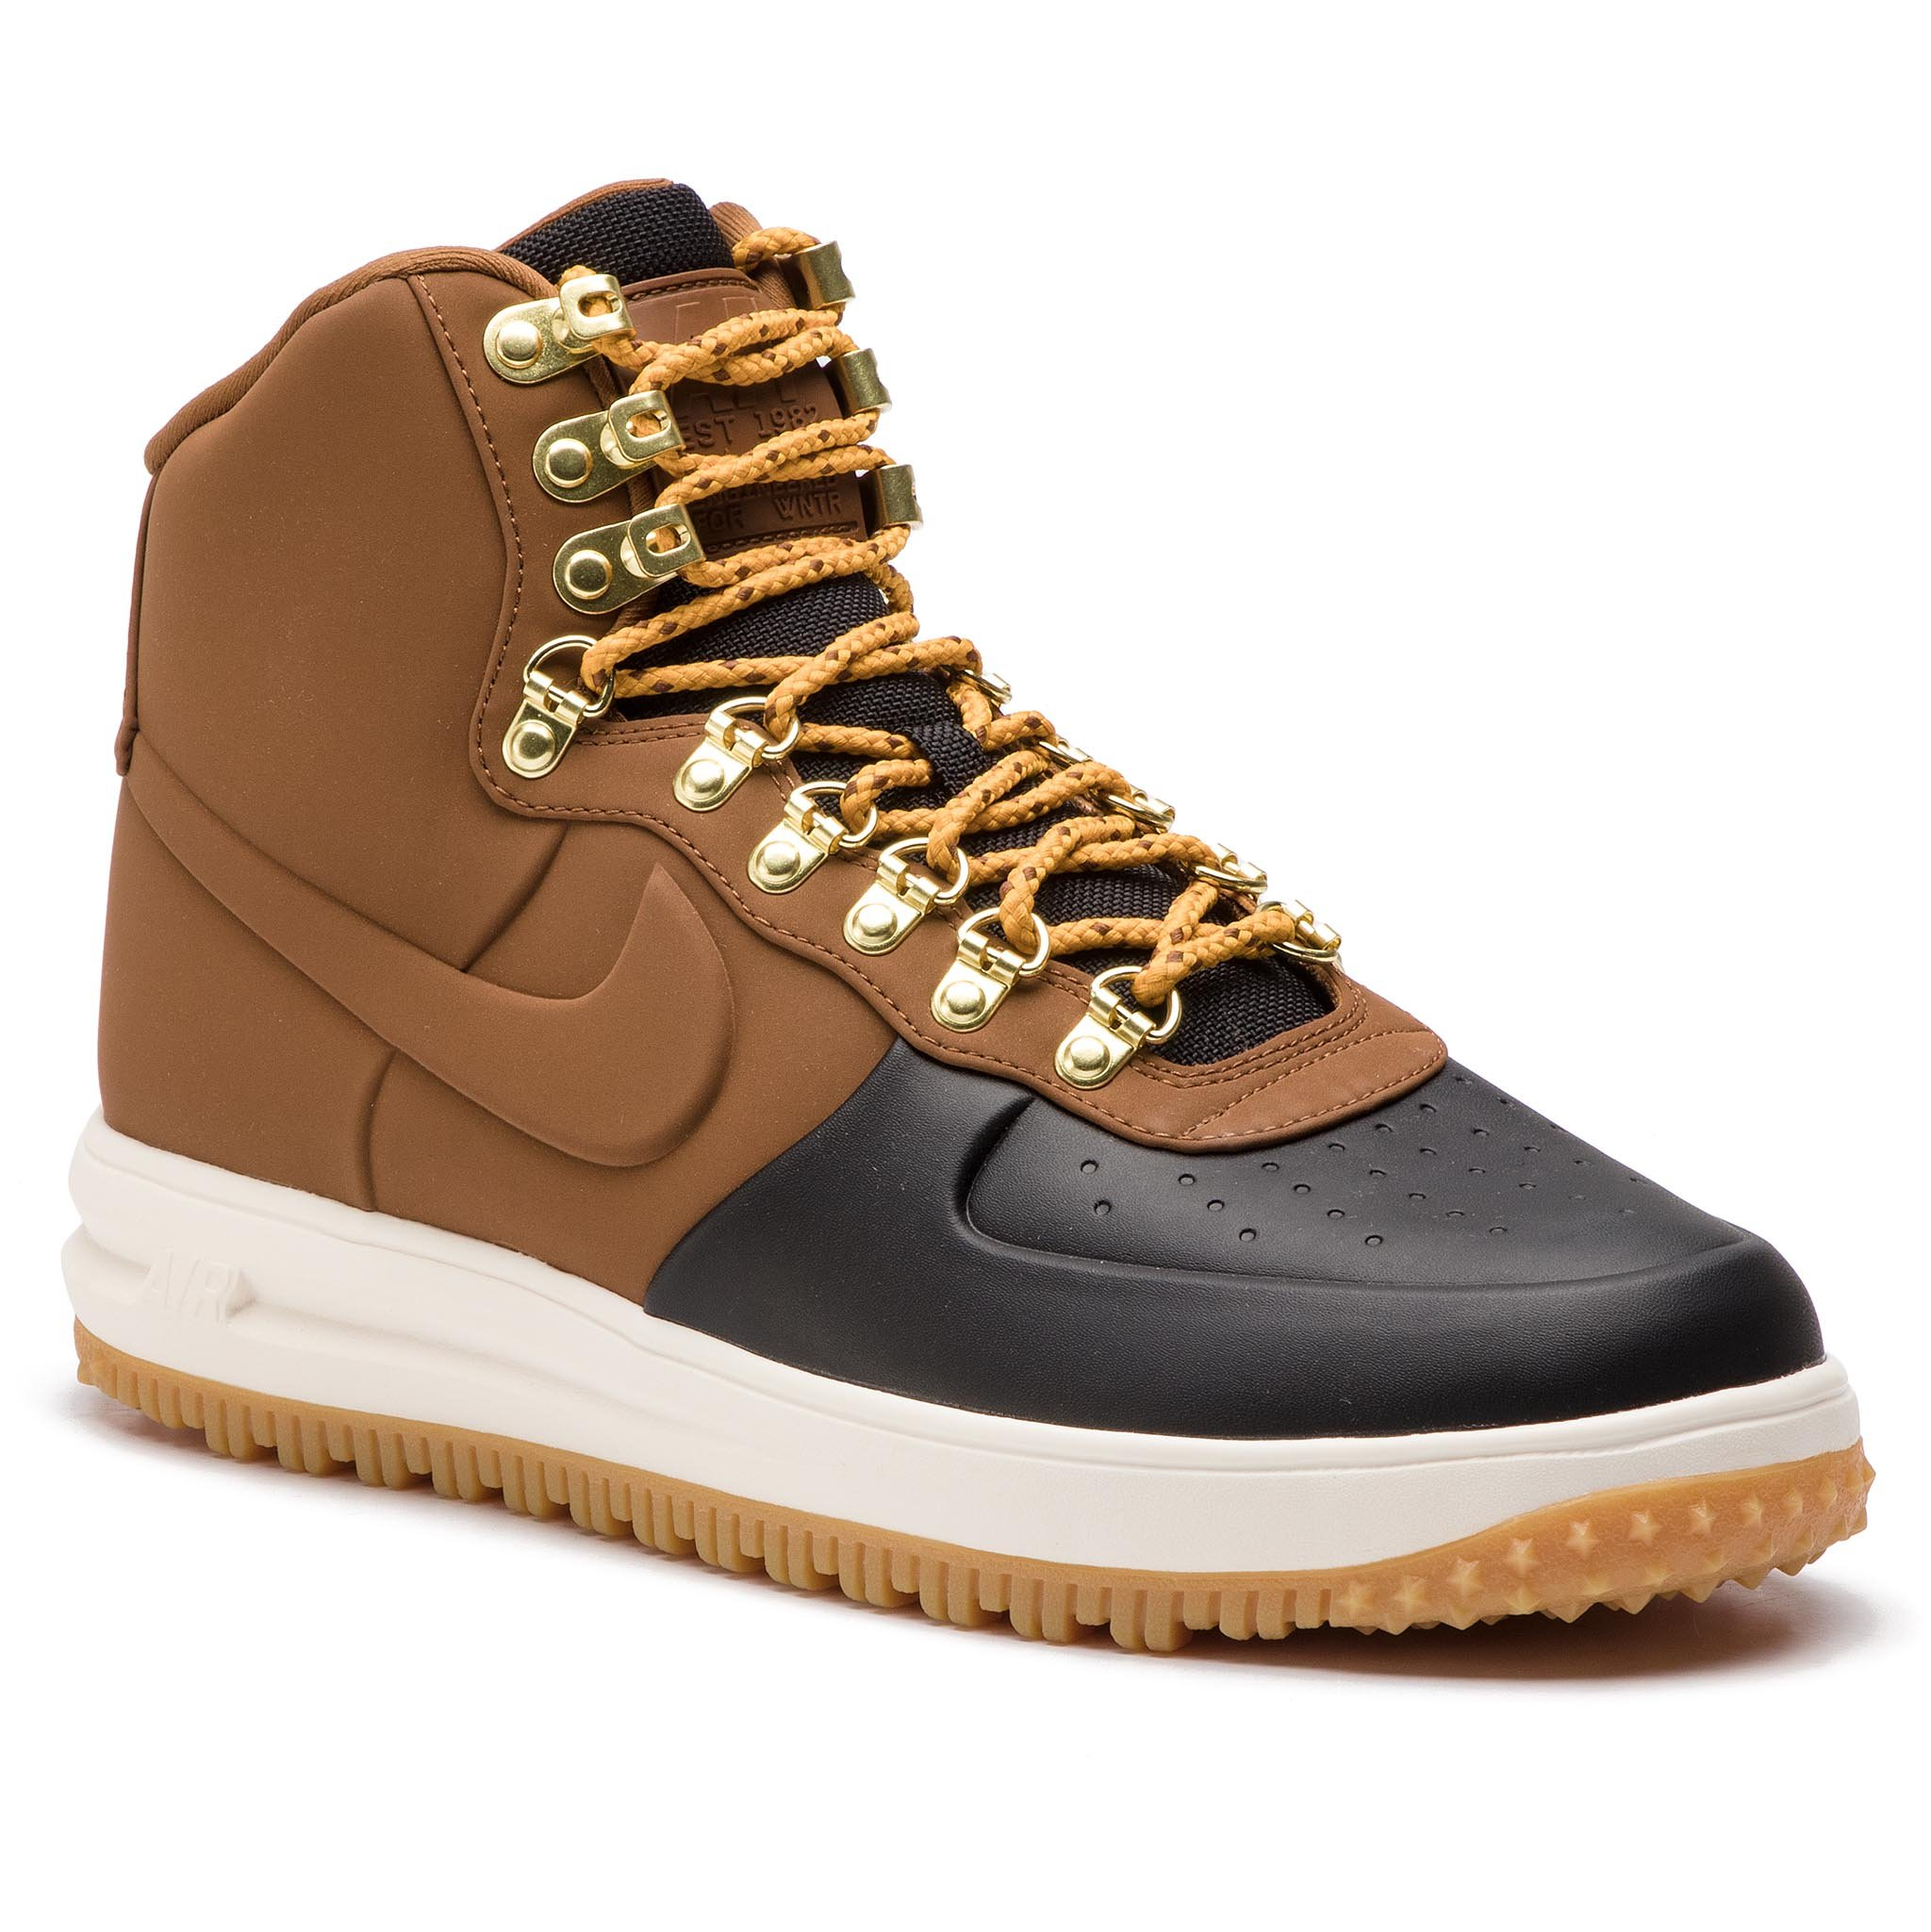 Buty NIKE – Lunar Force 1 Duckboot '18 BQ7930 001 Czarne/Lt British Tan/Phantom